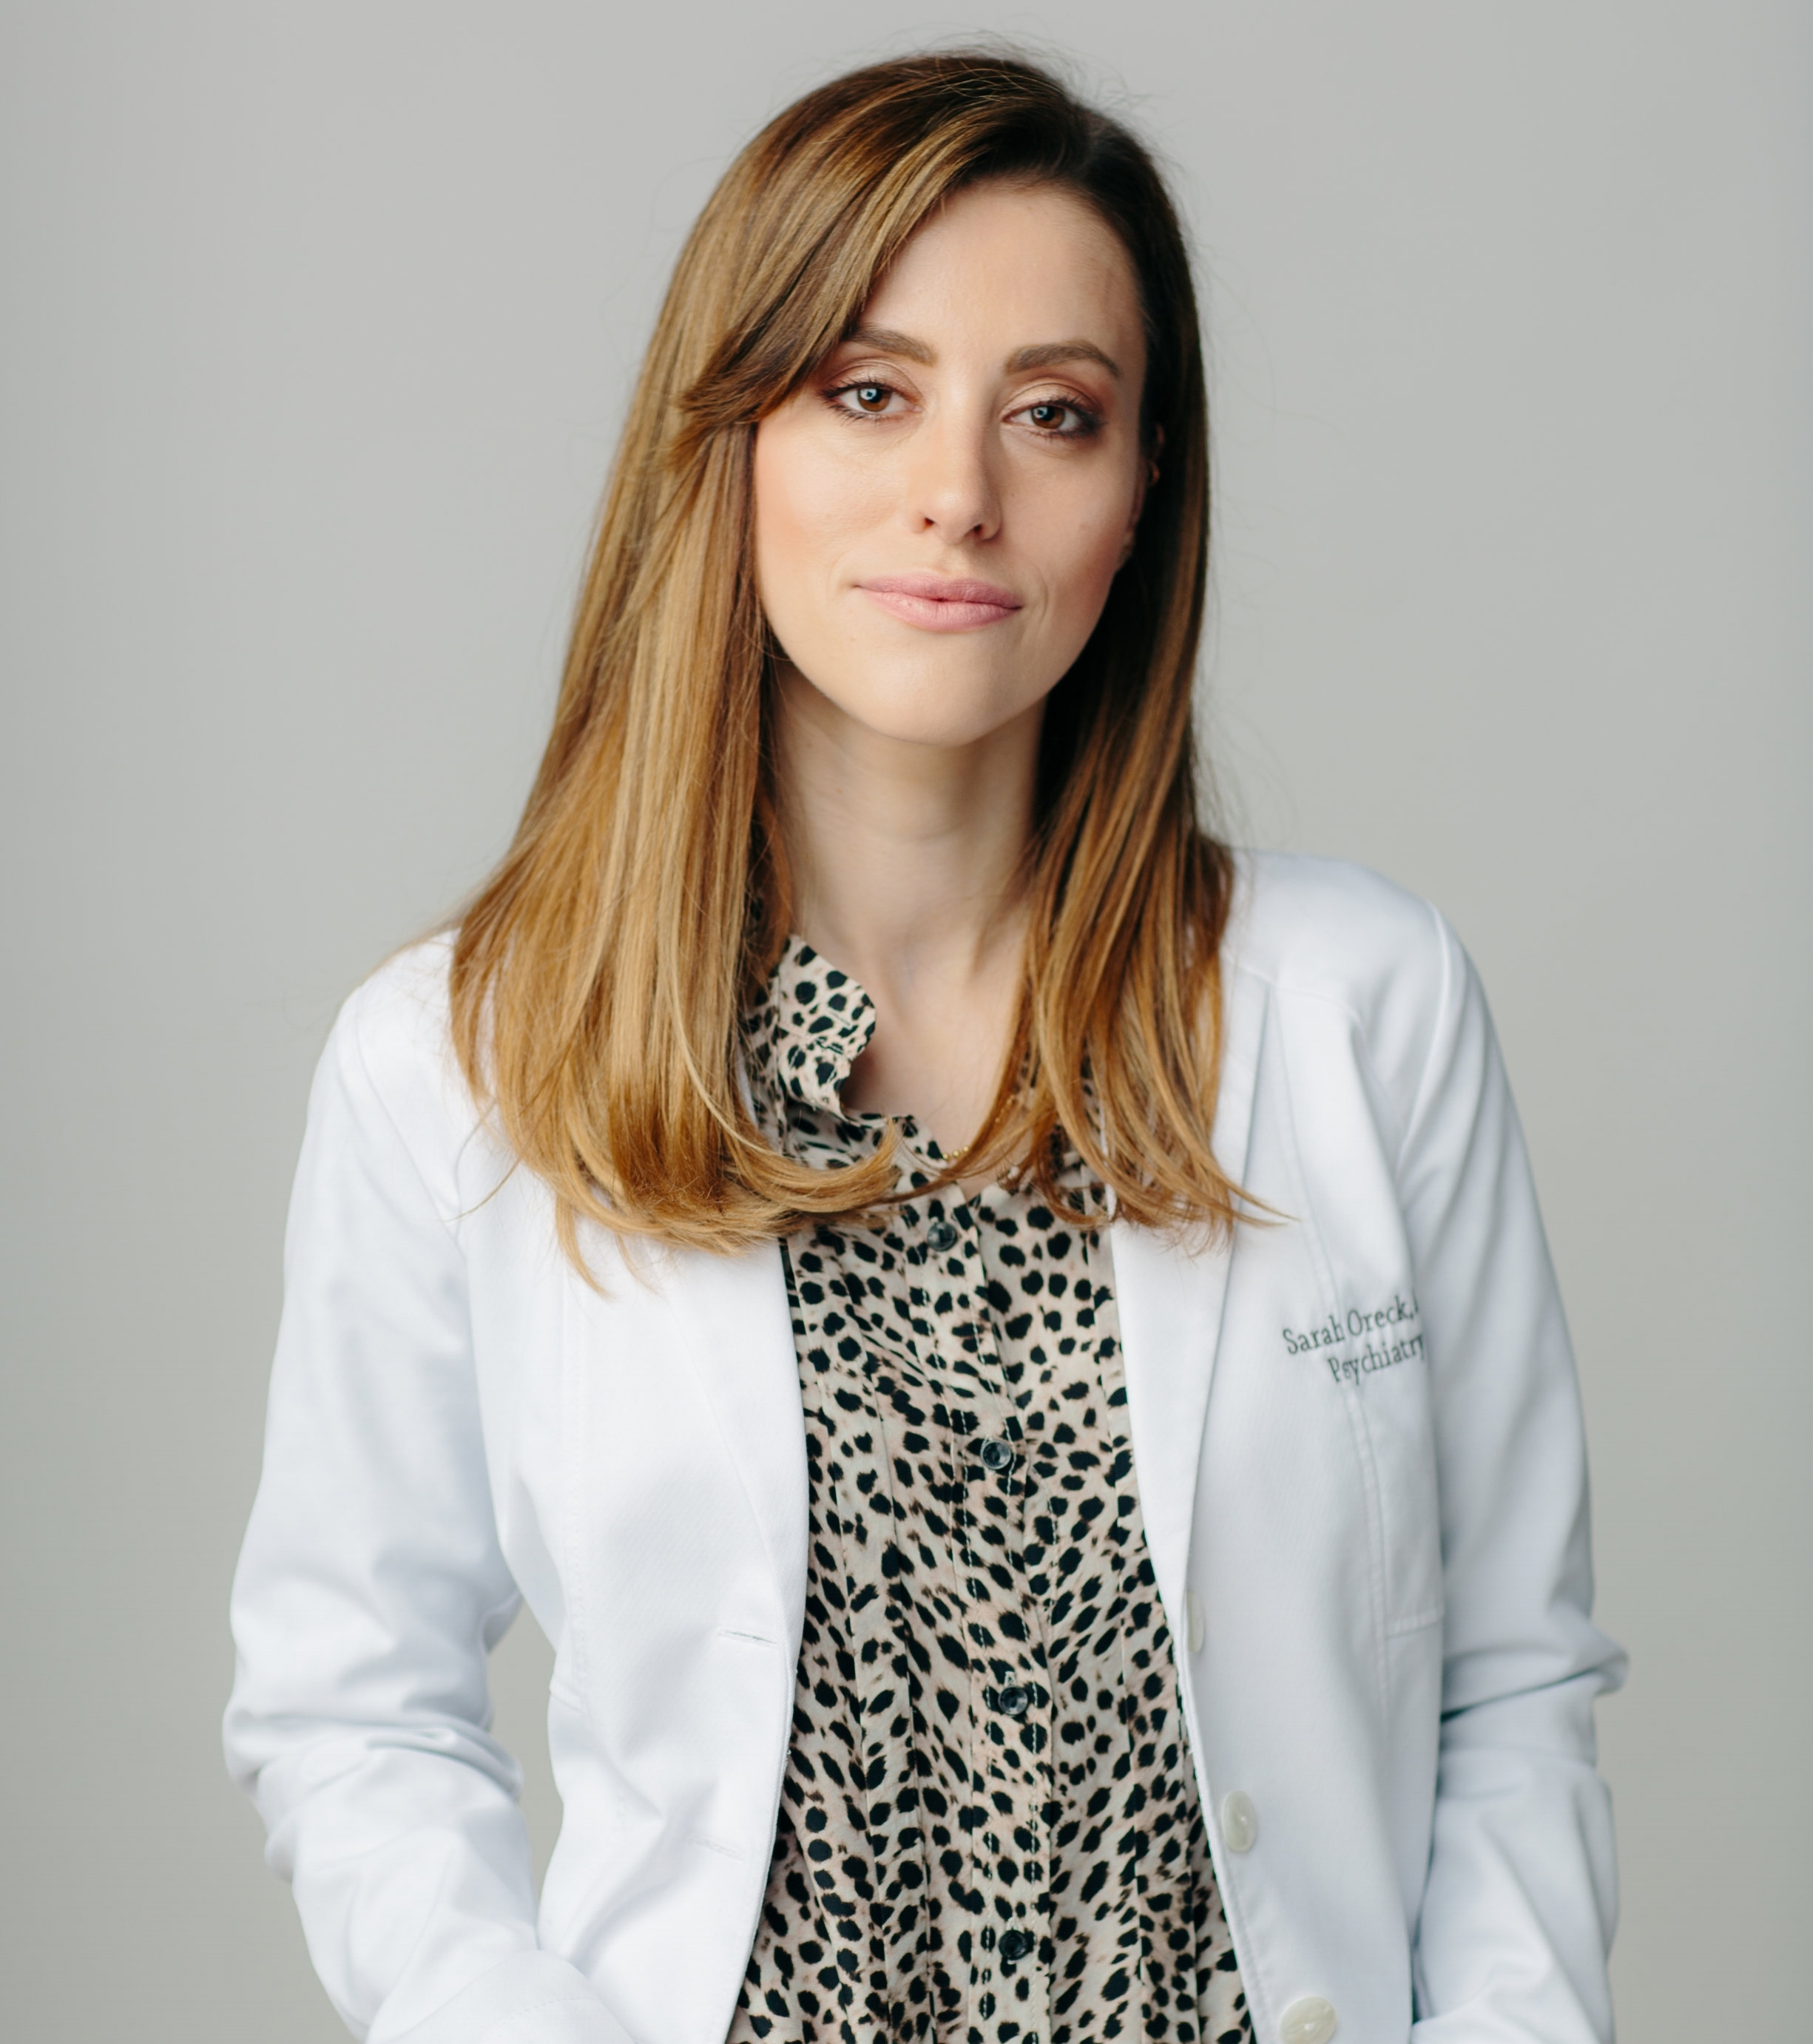 - Sarah Oreck, MD, MS, is a Columbia University-trained psychiatrist focusing on women's mental wellness. In addition to her expertise in general and addiction psychiatry, she is one of the few doctors with specialized training in reproductive psychiatry. Dr. Oreck combines the most up-to-date medical treatments with talk therapy and a whole-body complementary approach.